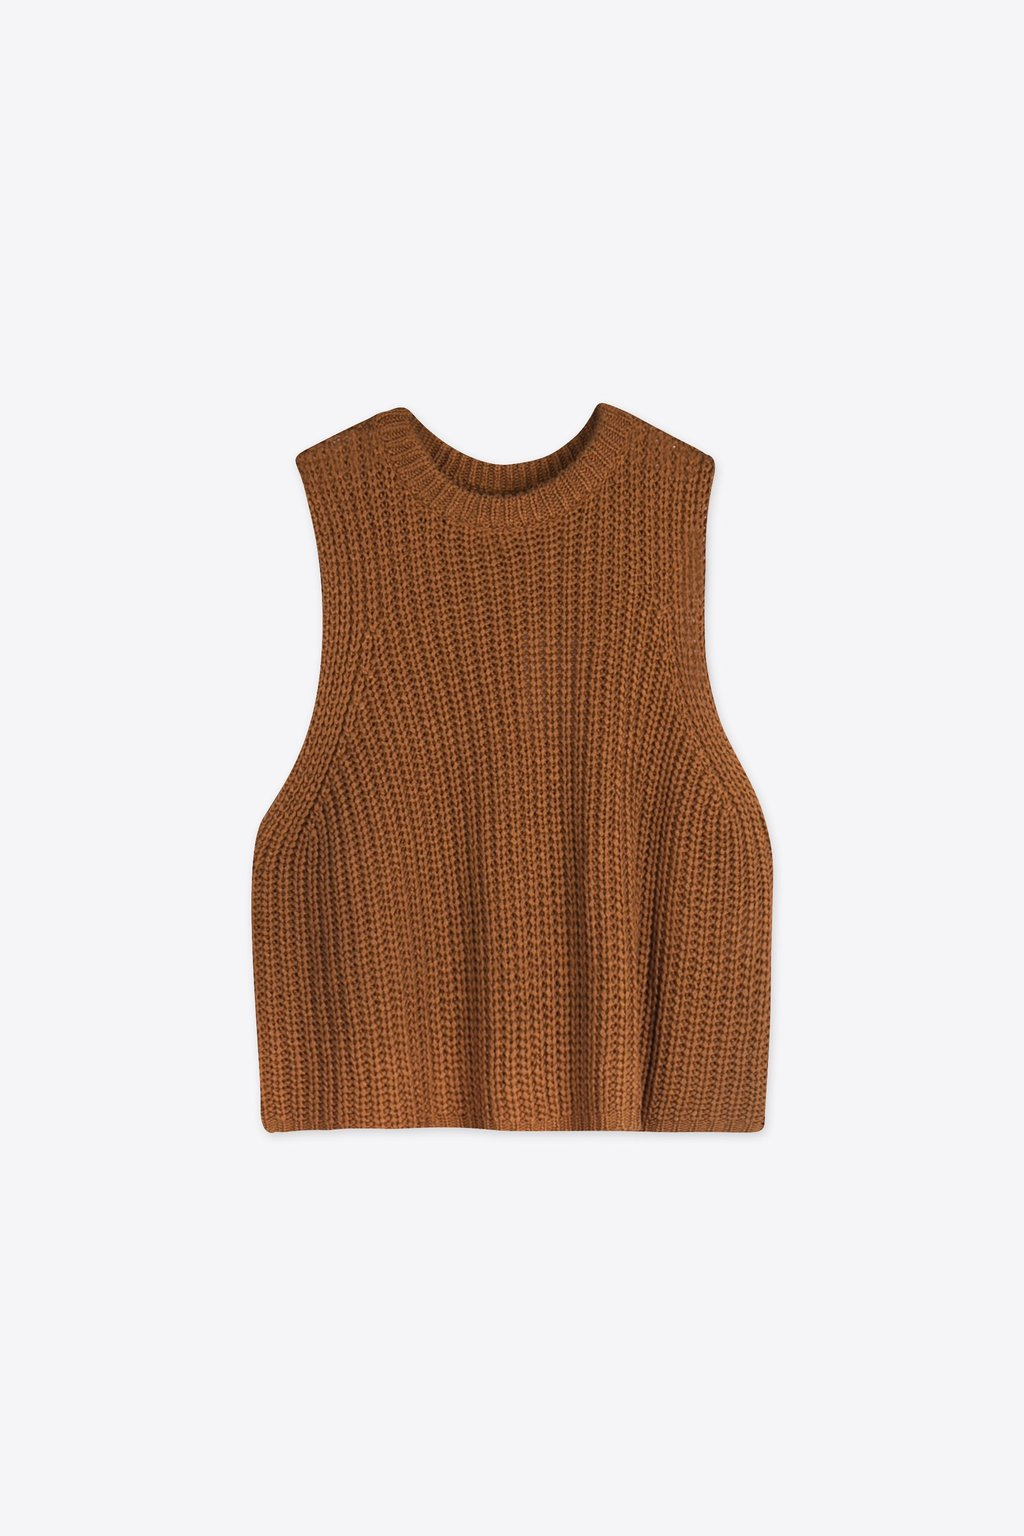 Sweater 1338 Camel 15